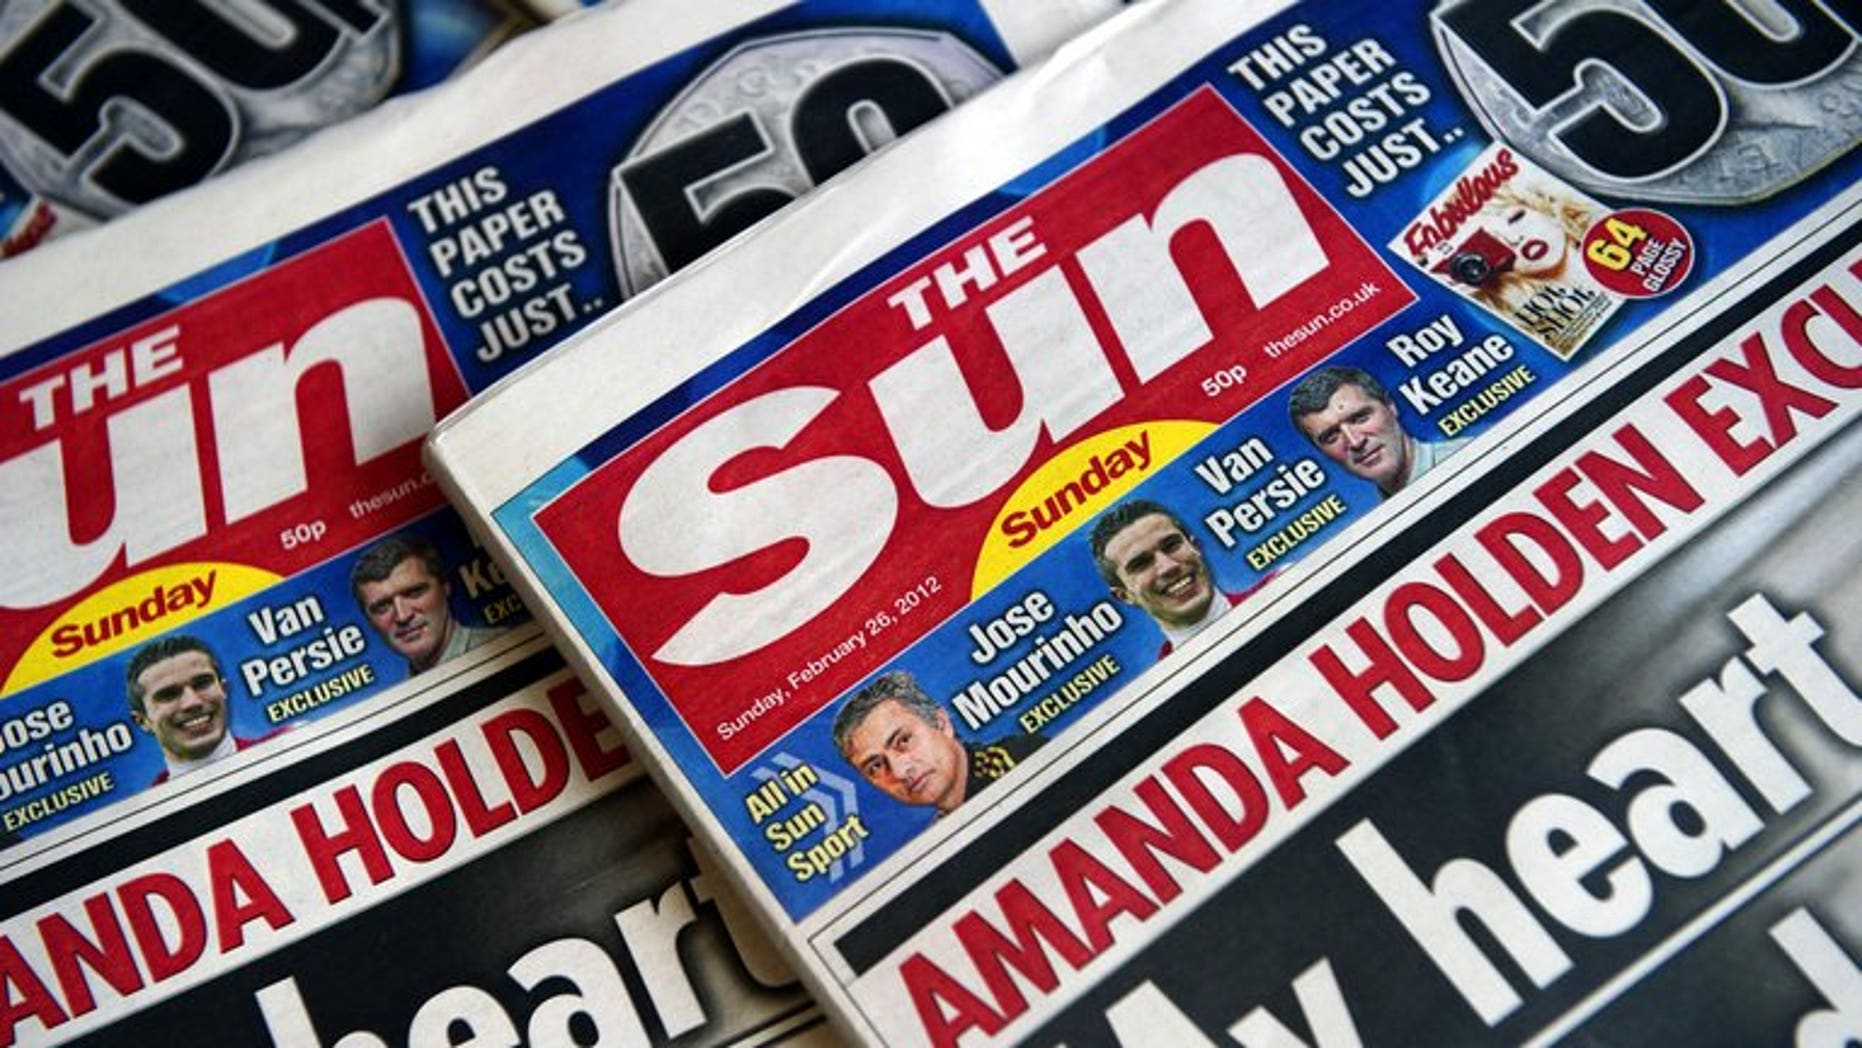 Britain's top-selling newspaper The Sun, which is owned by Rupert Murdoch began charging readers for access to its website.